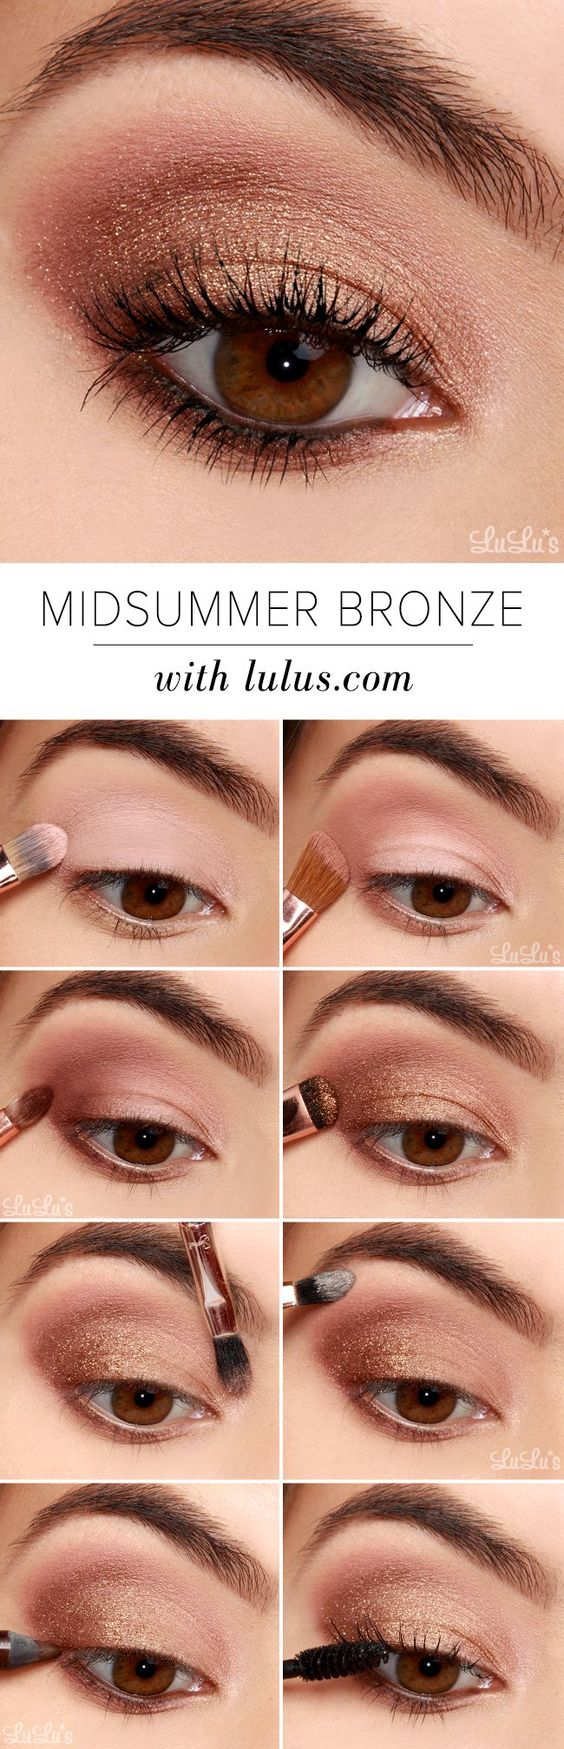 LuLu*s How-To: Midsummer Bronze Eyeshadow Tutorial with Sigma! at LuLus.com!: